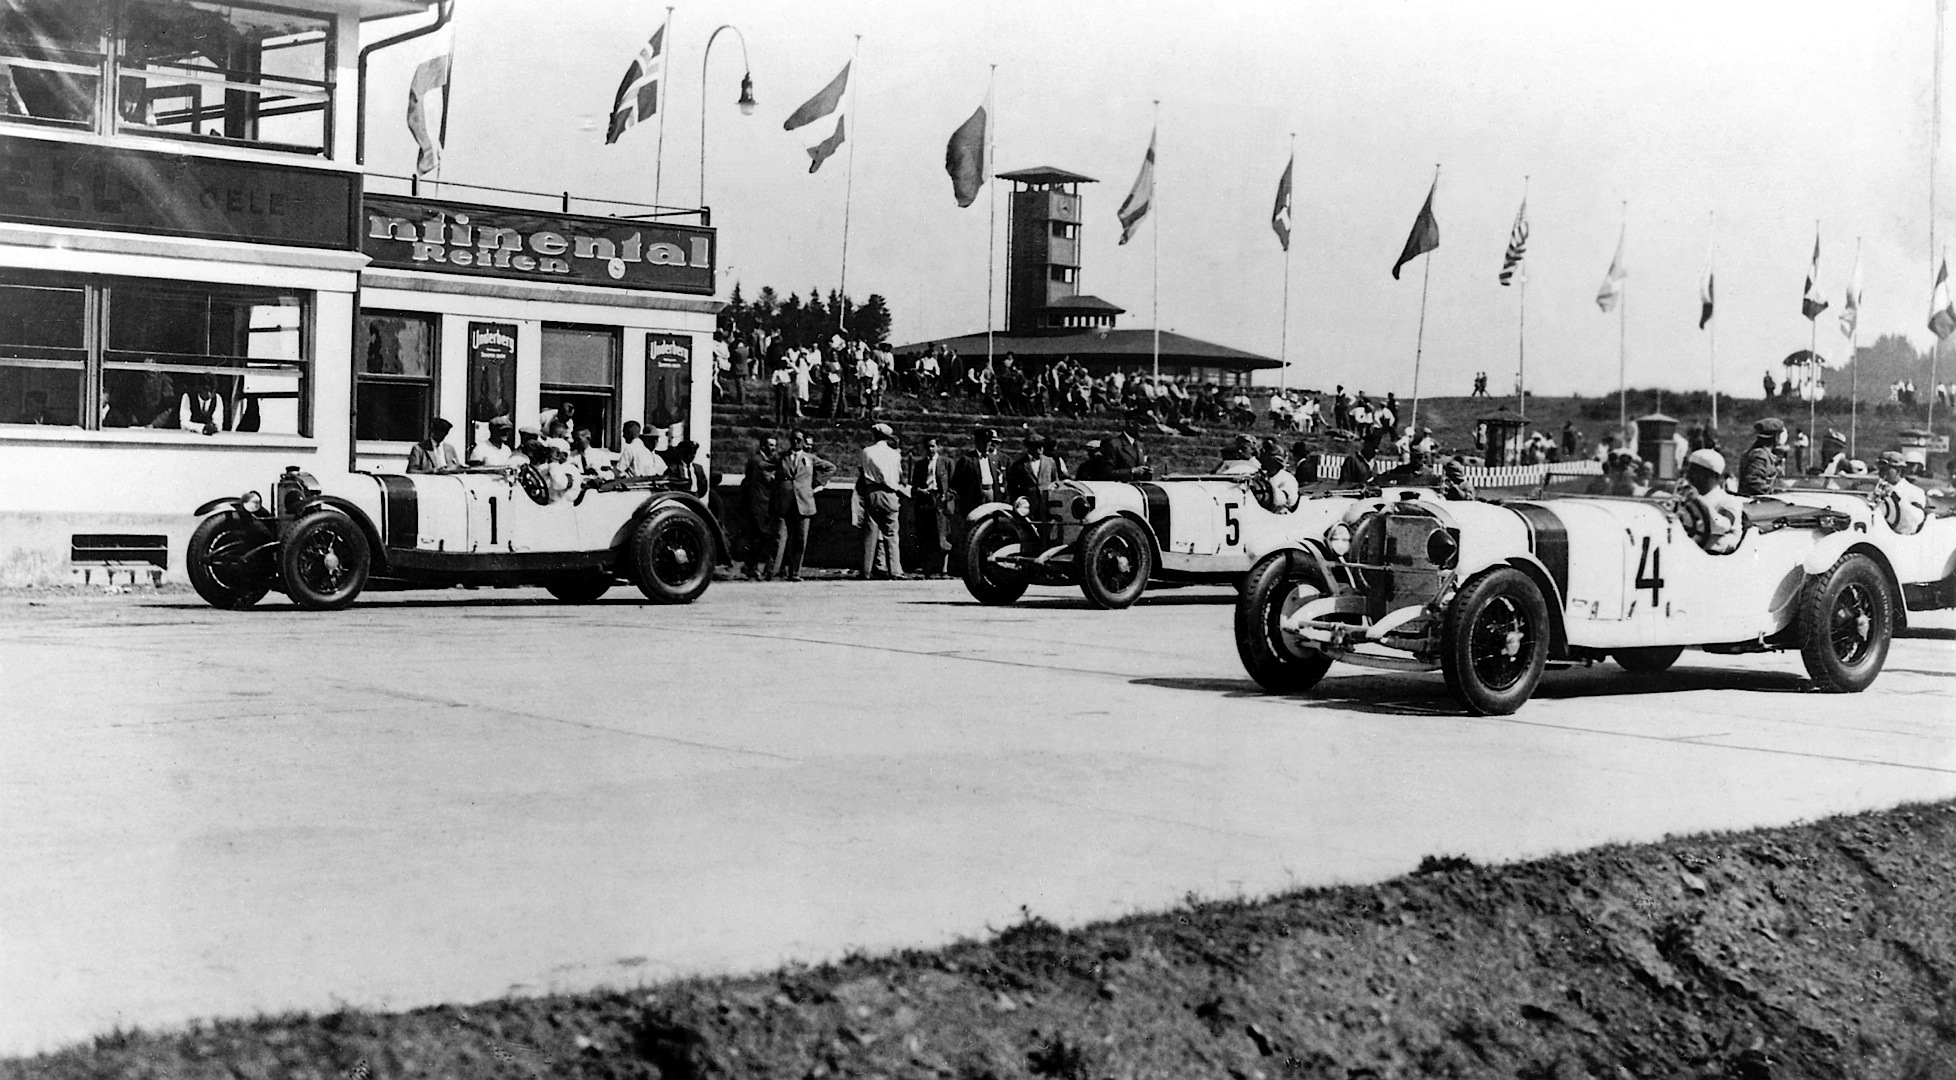 Mercedes benz motorsport history detailed in new tv series for Mercedes benz history